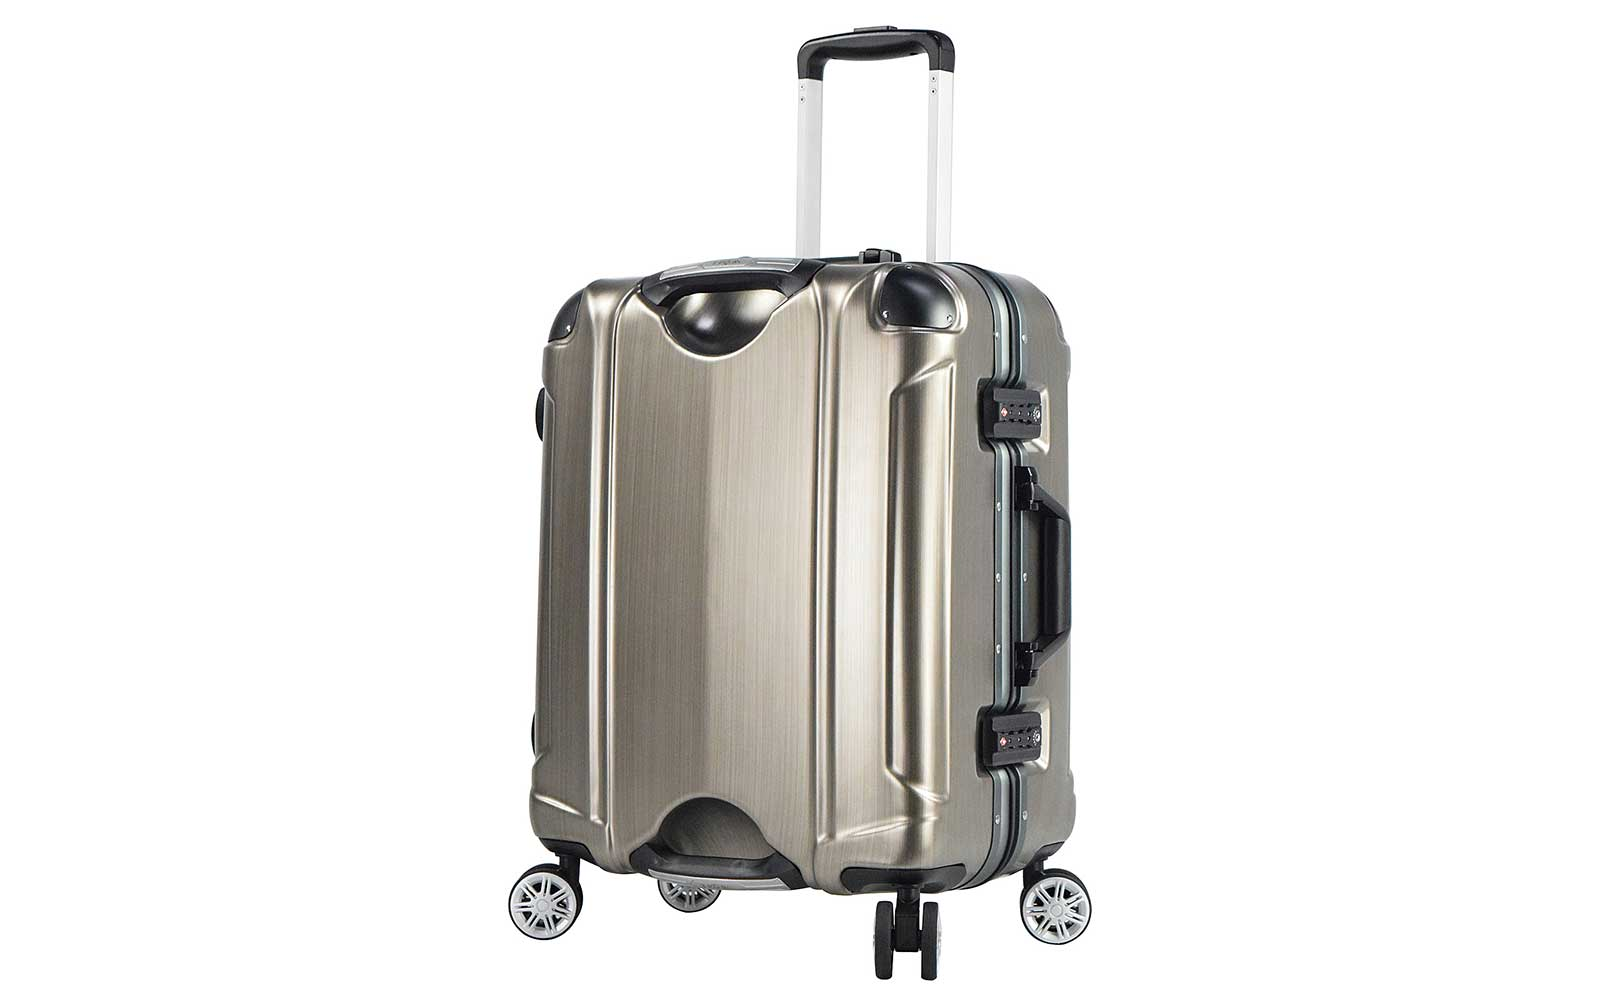 Travelers Club hardshell luggage